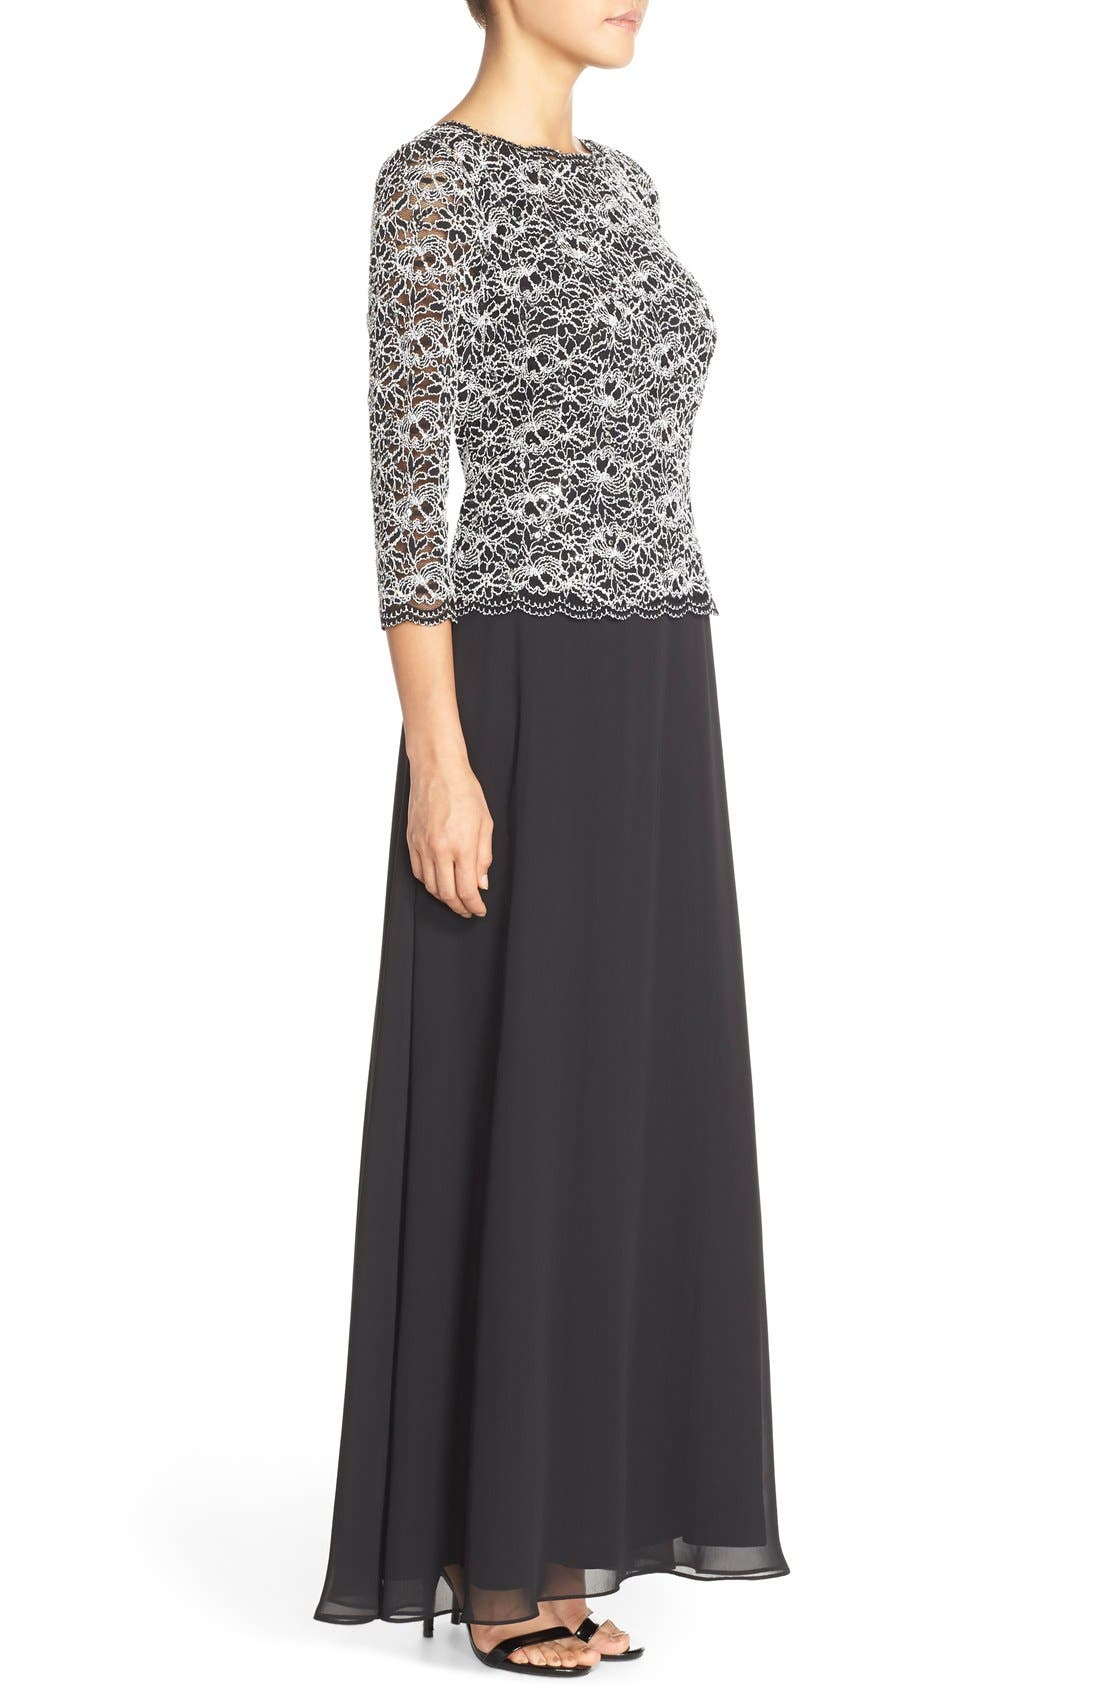 ALEX EVENINGS, Lace & Chiffon Mock Two-Piece Gown, Alternate thumbnail 5, color, BLACK/ WHITE